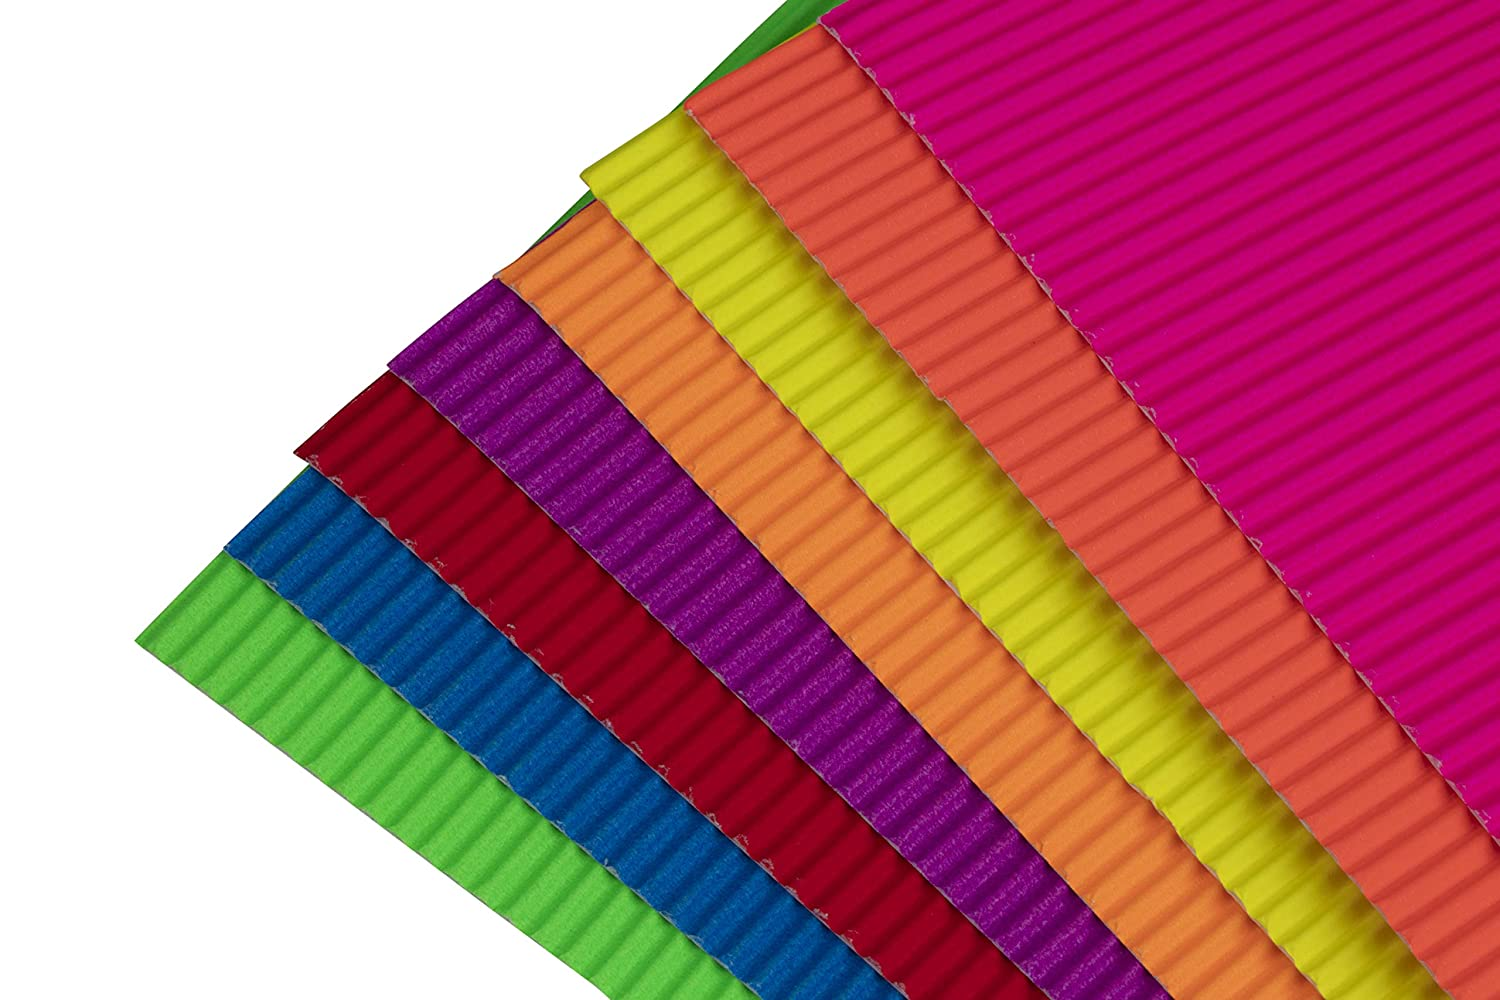 8 Assorted Colors 64-Pack Colored Corrugated Paper Corrugated Cardboard Sheets 8.25 x 11.75 Inches Corrugated Cardstock for DIY Arts and Crafts Projects Scrapbooking